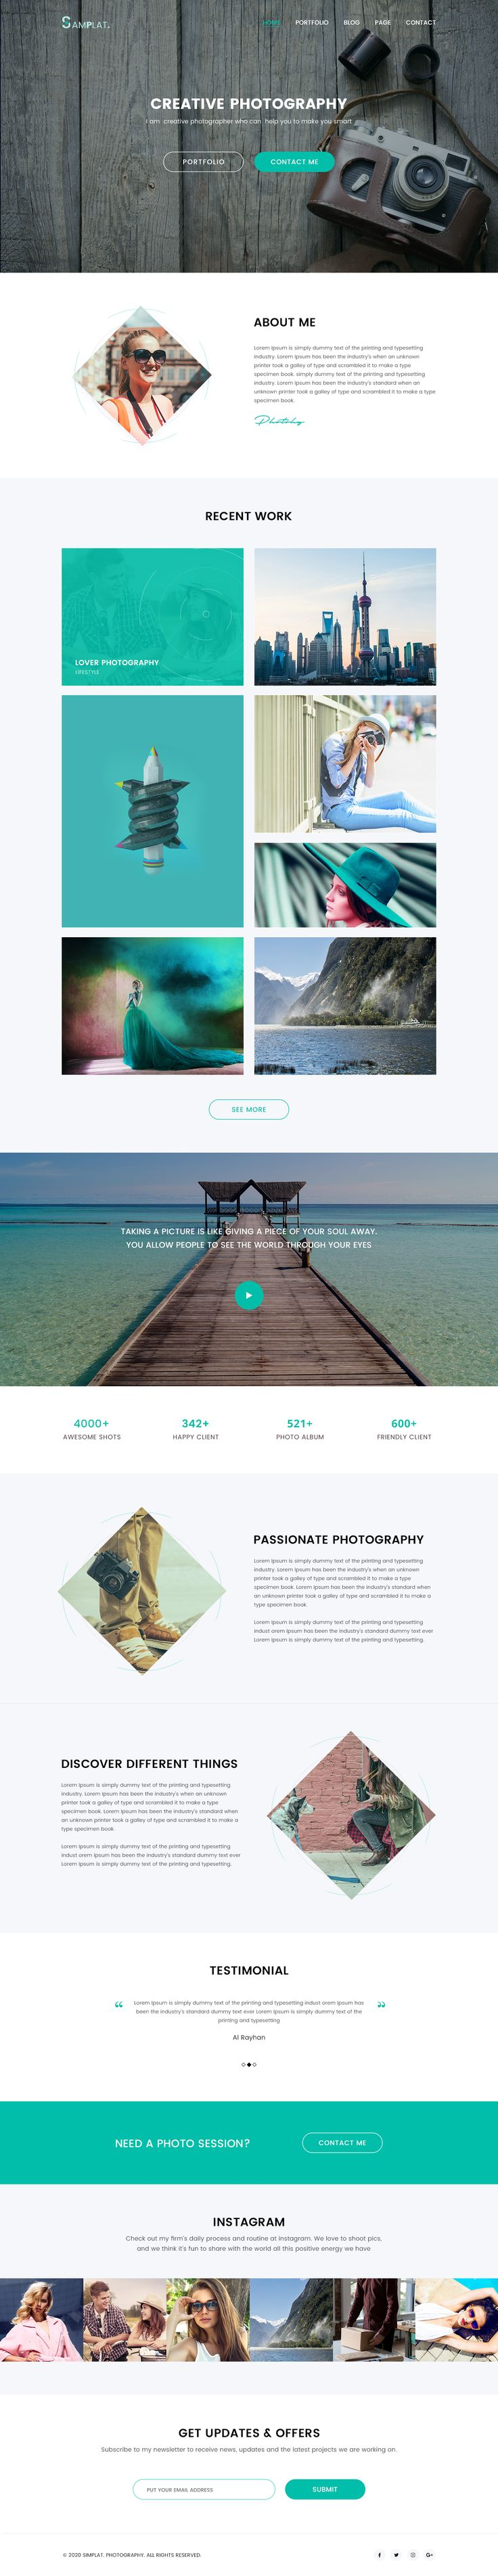 Photographer Portfolio Website – Website by Masum Parvej. If you like UX, design, or design thinking, check out theuxblog.c